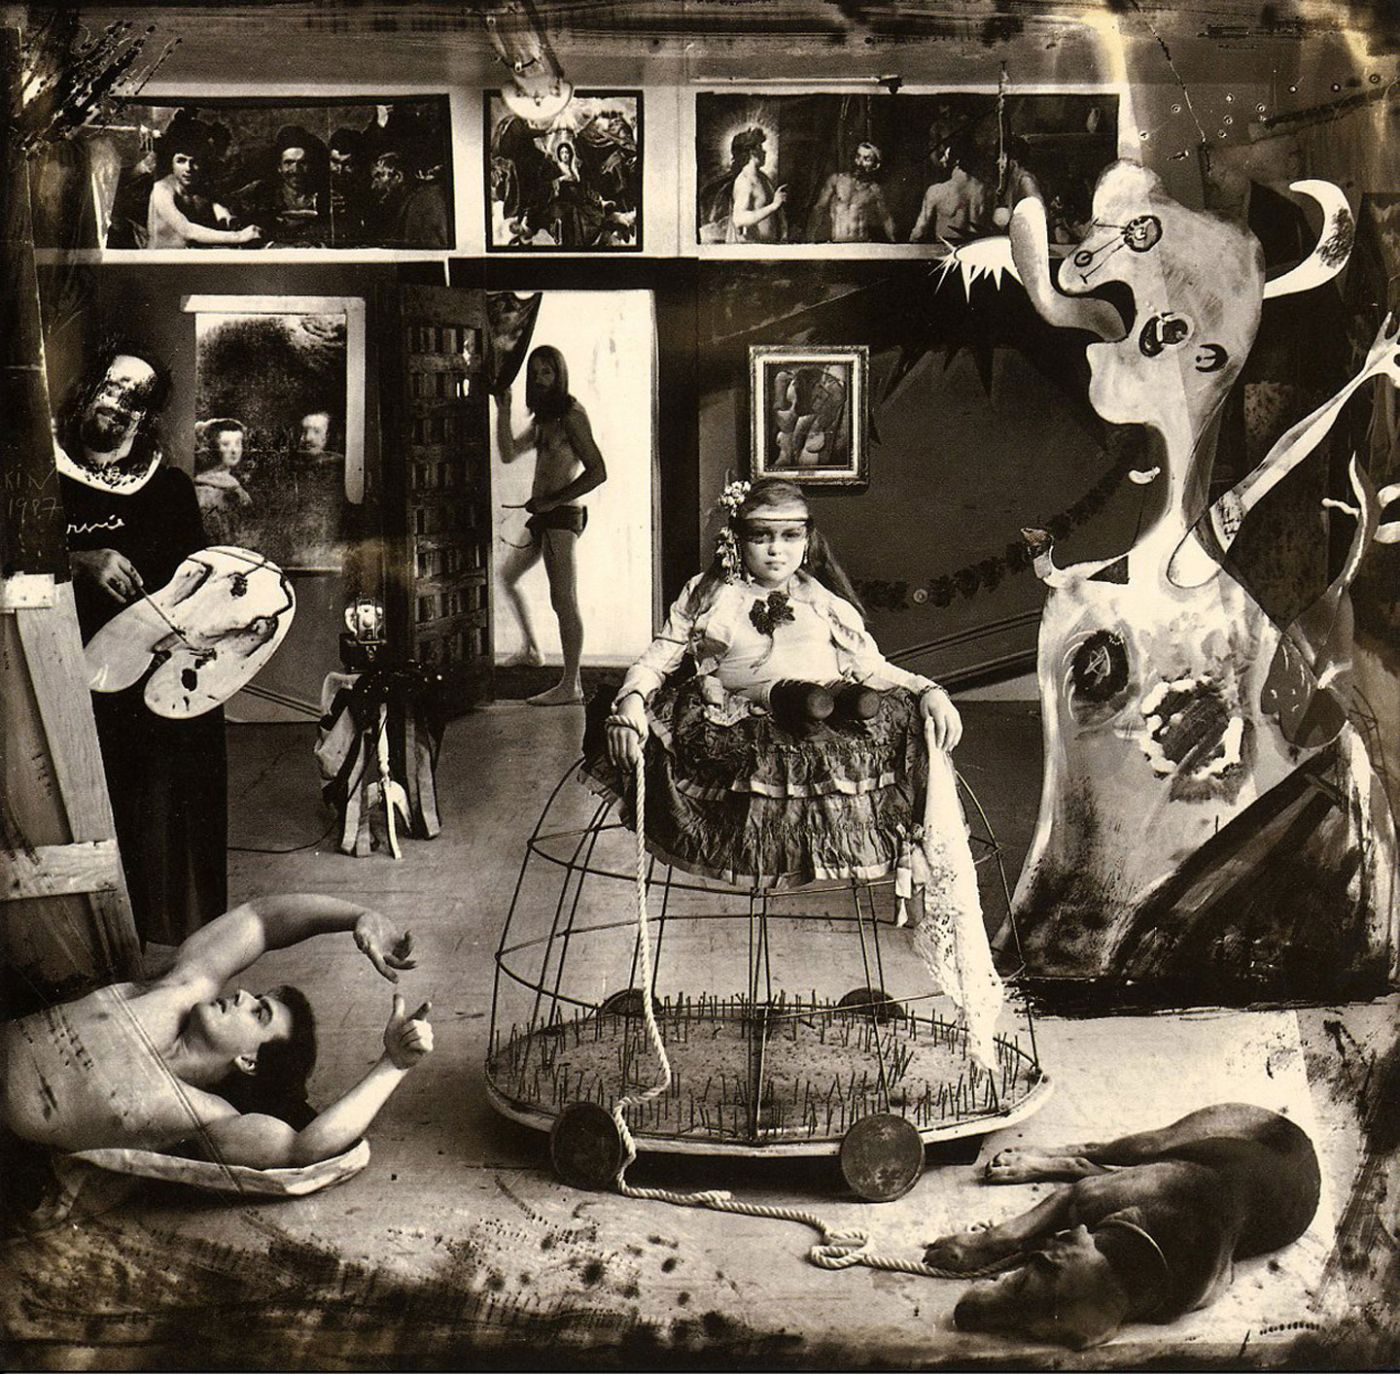 Joel-Peter Witkin (Centre National de la Photographie, Paris & Ministerio de Cultura Spain)